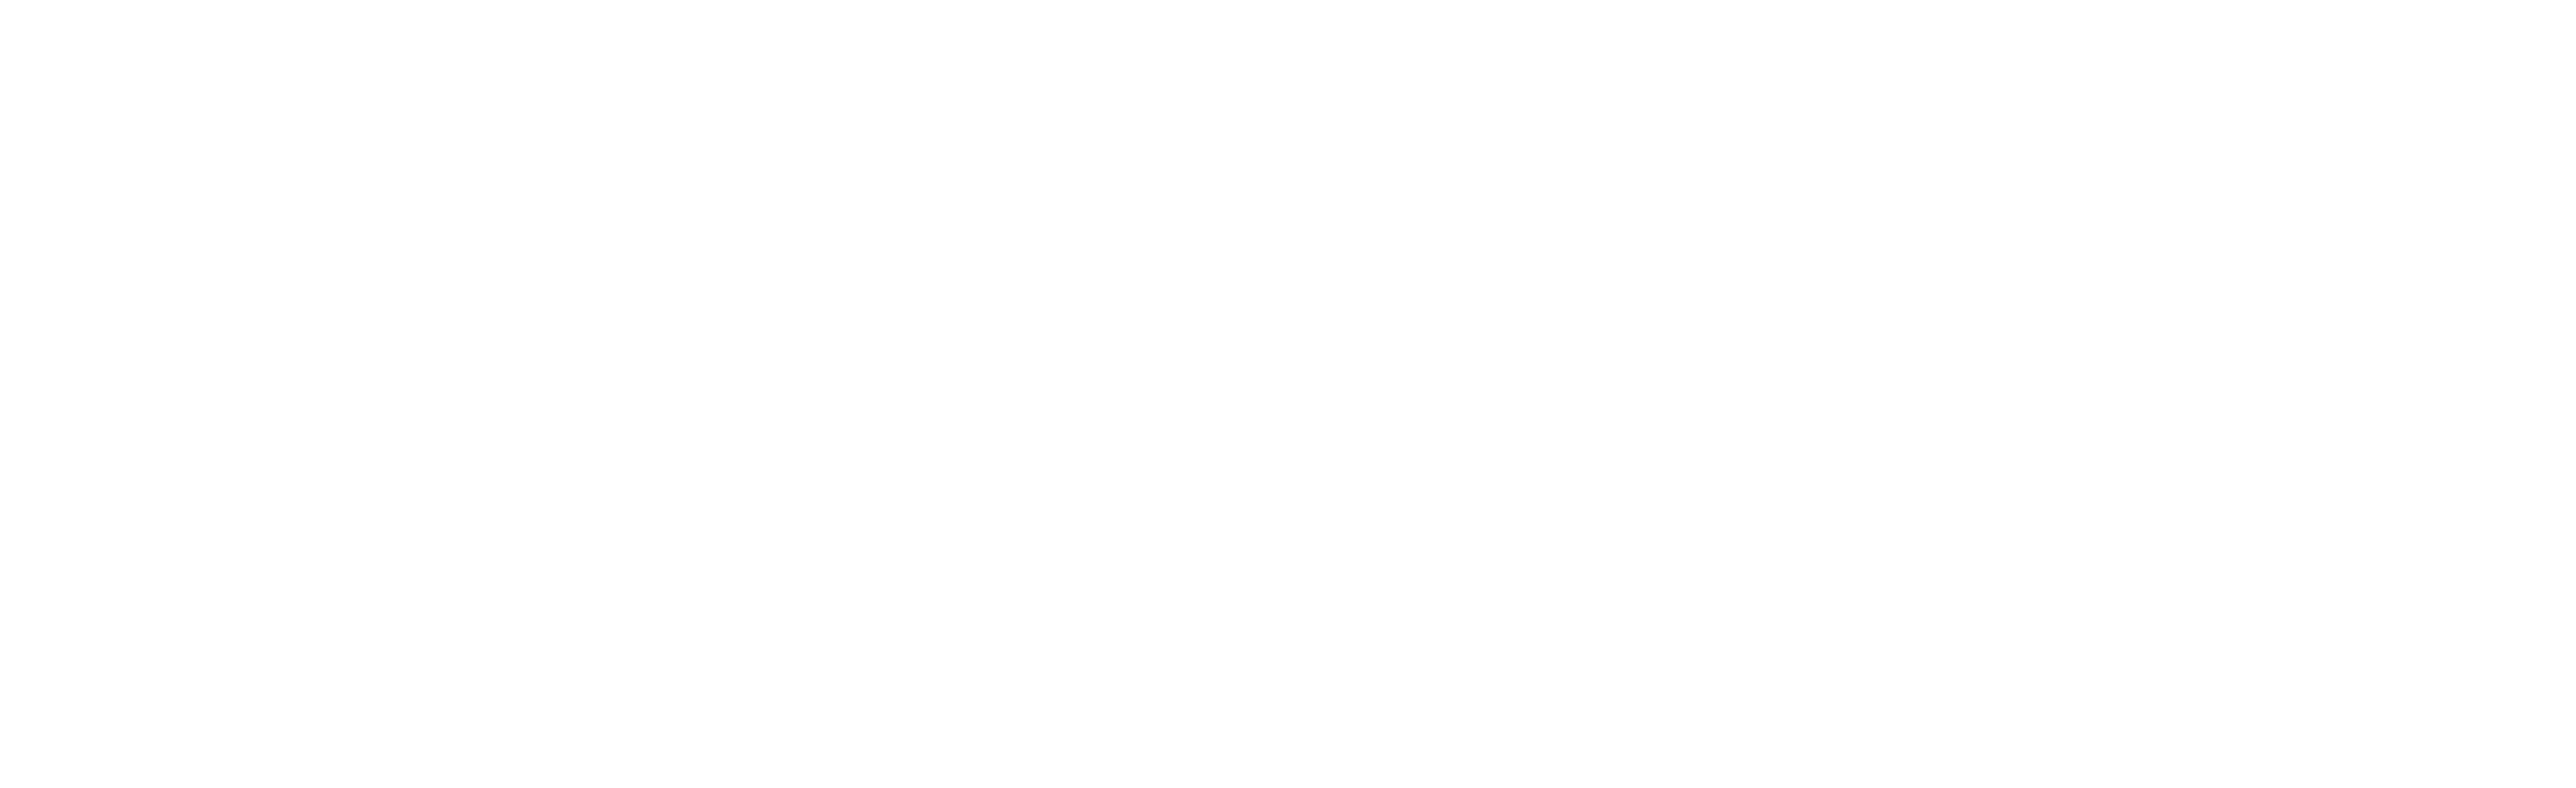 The Fitness Business Growth Kit